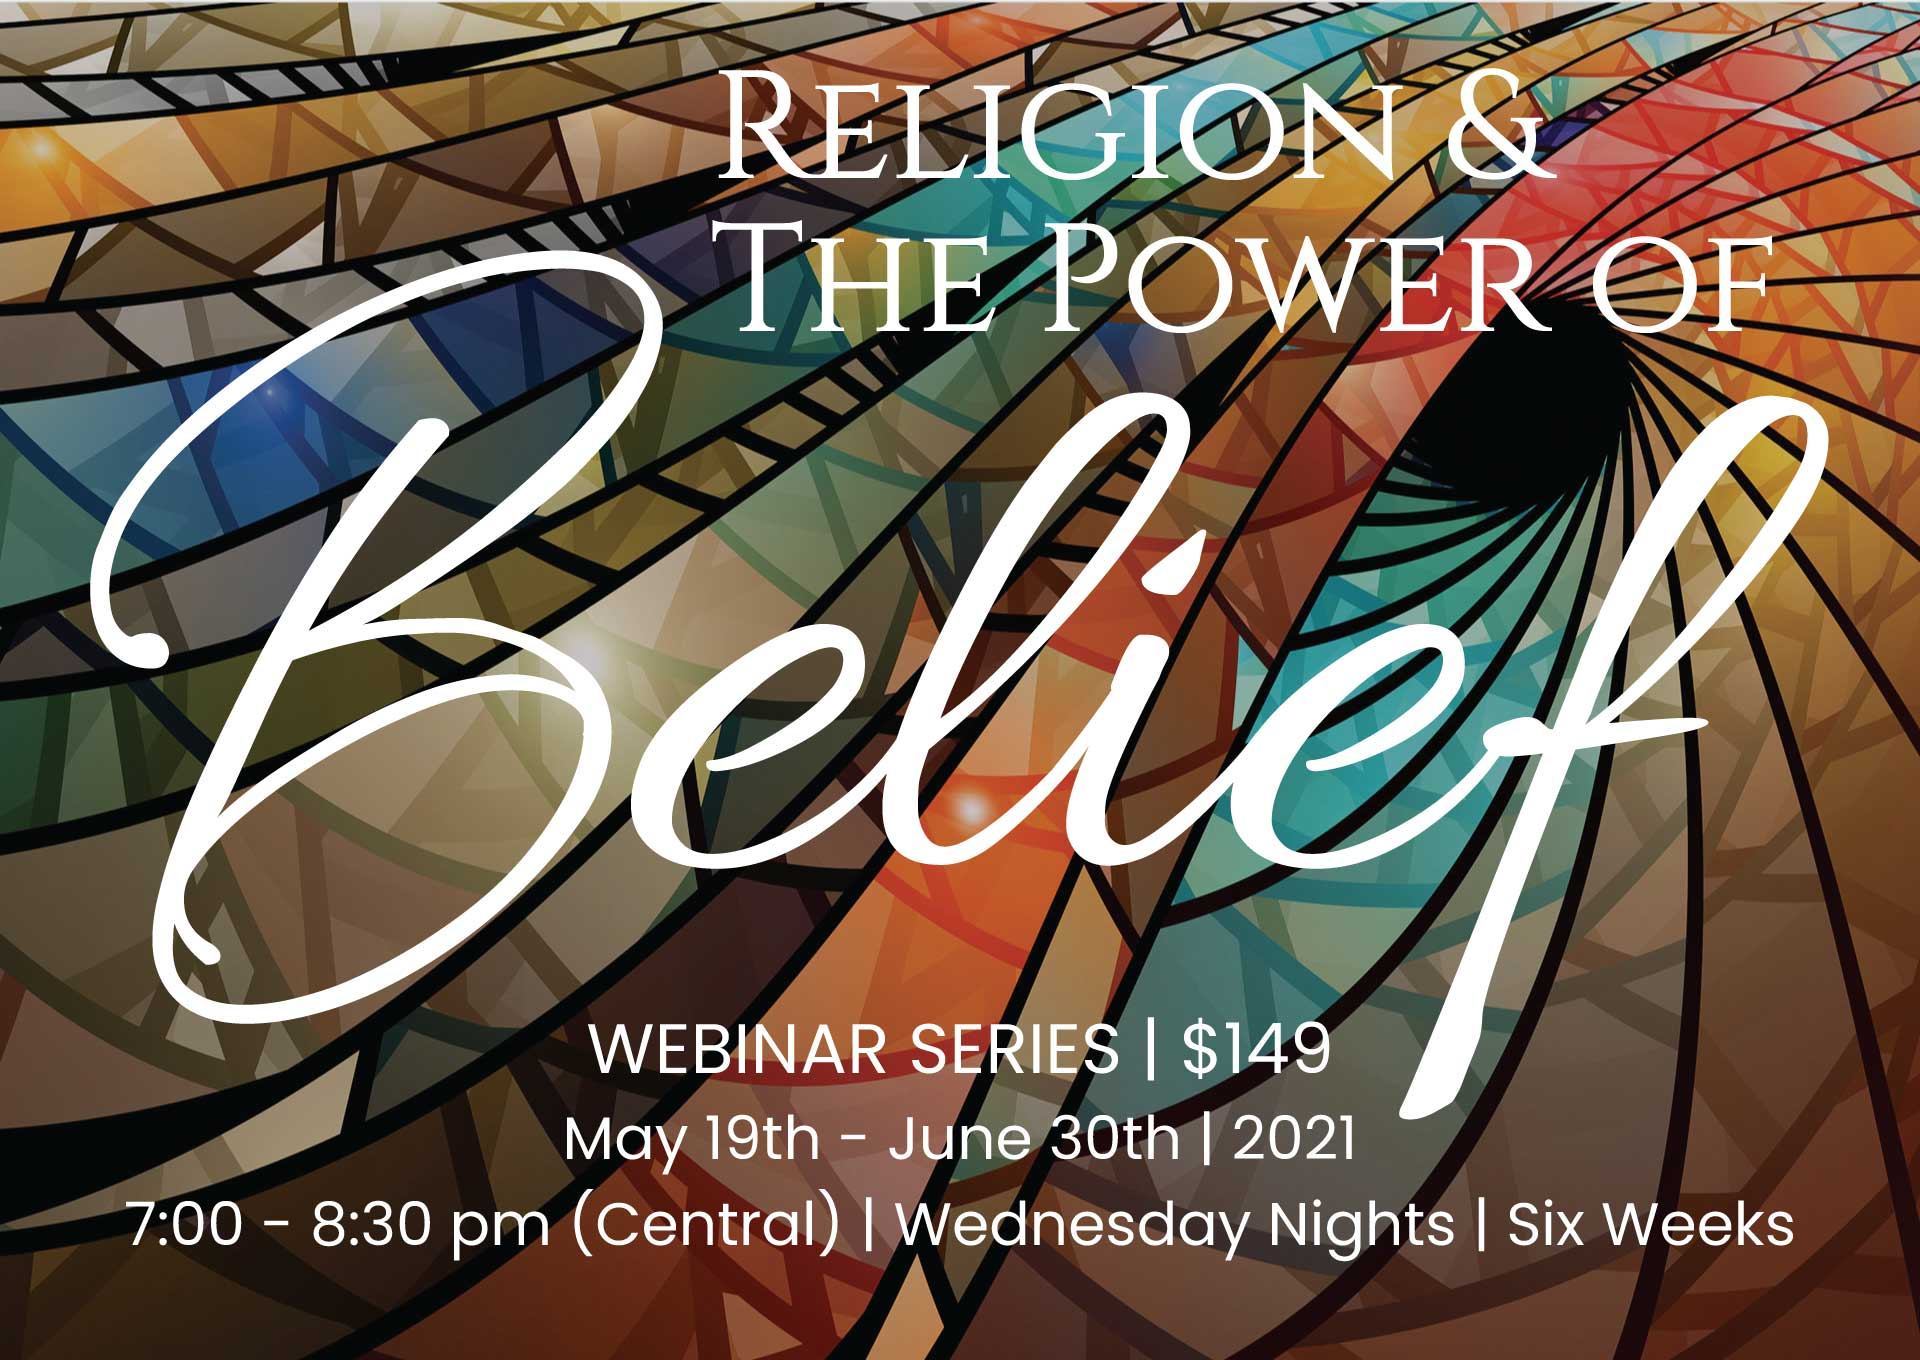 Webinar Series: Religion and The Power of Belief